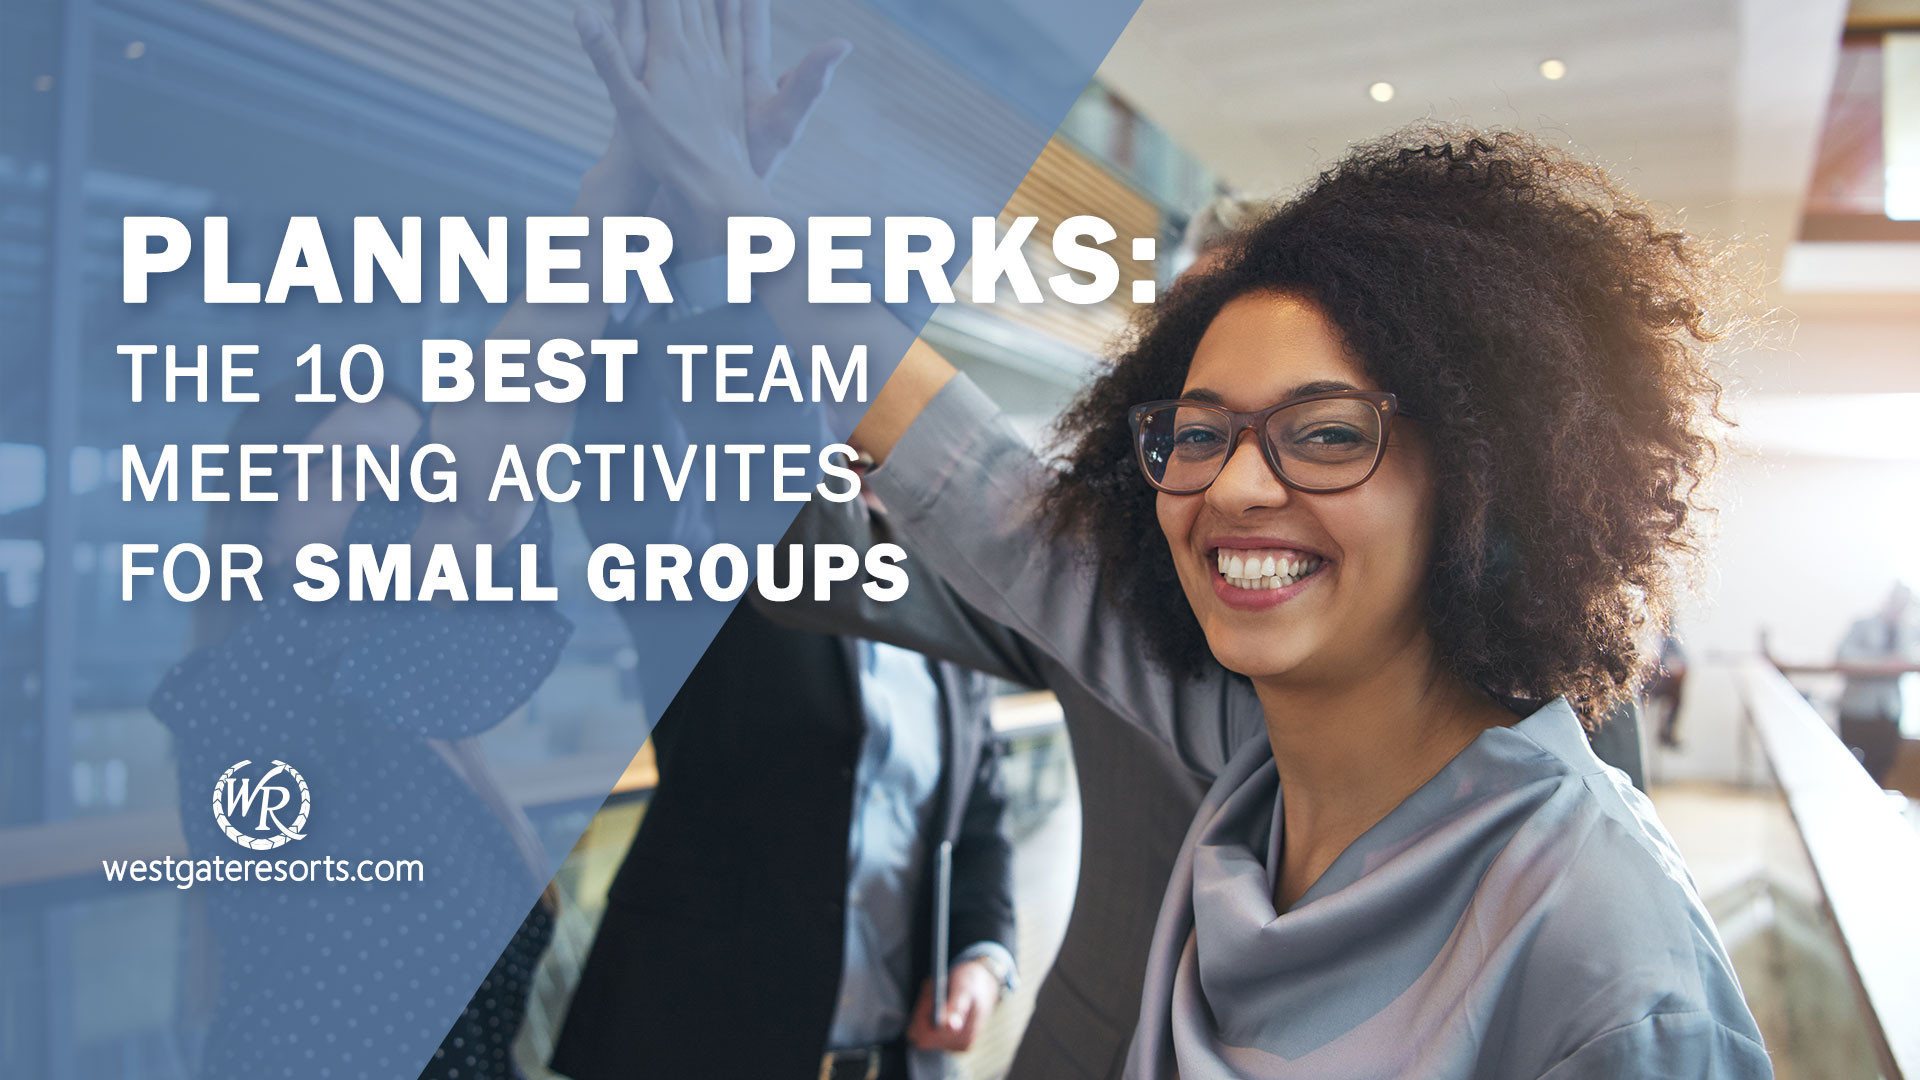 Planner Perks: The 10 Best Team Meeting Activities for Small Groups | Meeting Planner Tips | Westgate Groups & Meetings